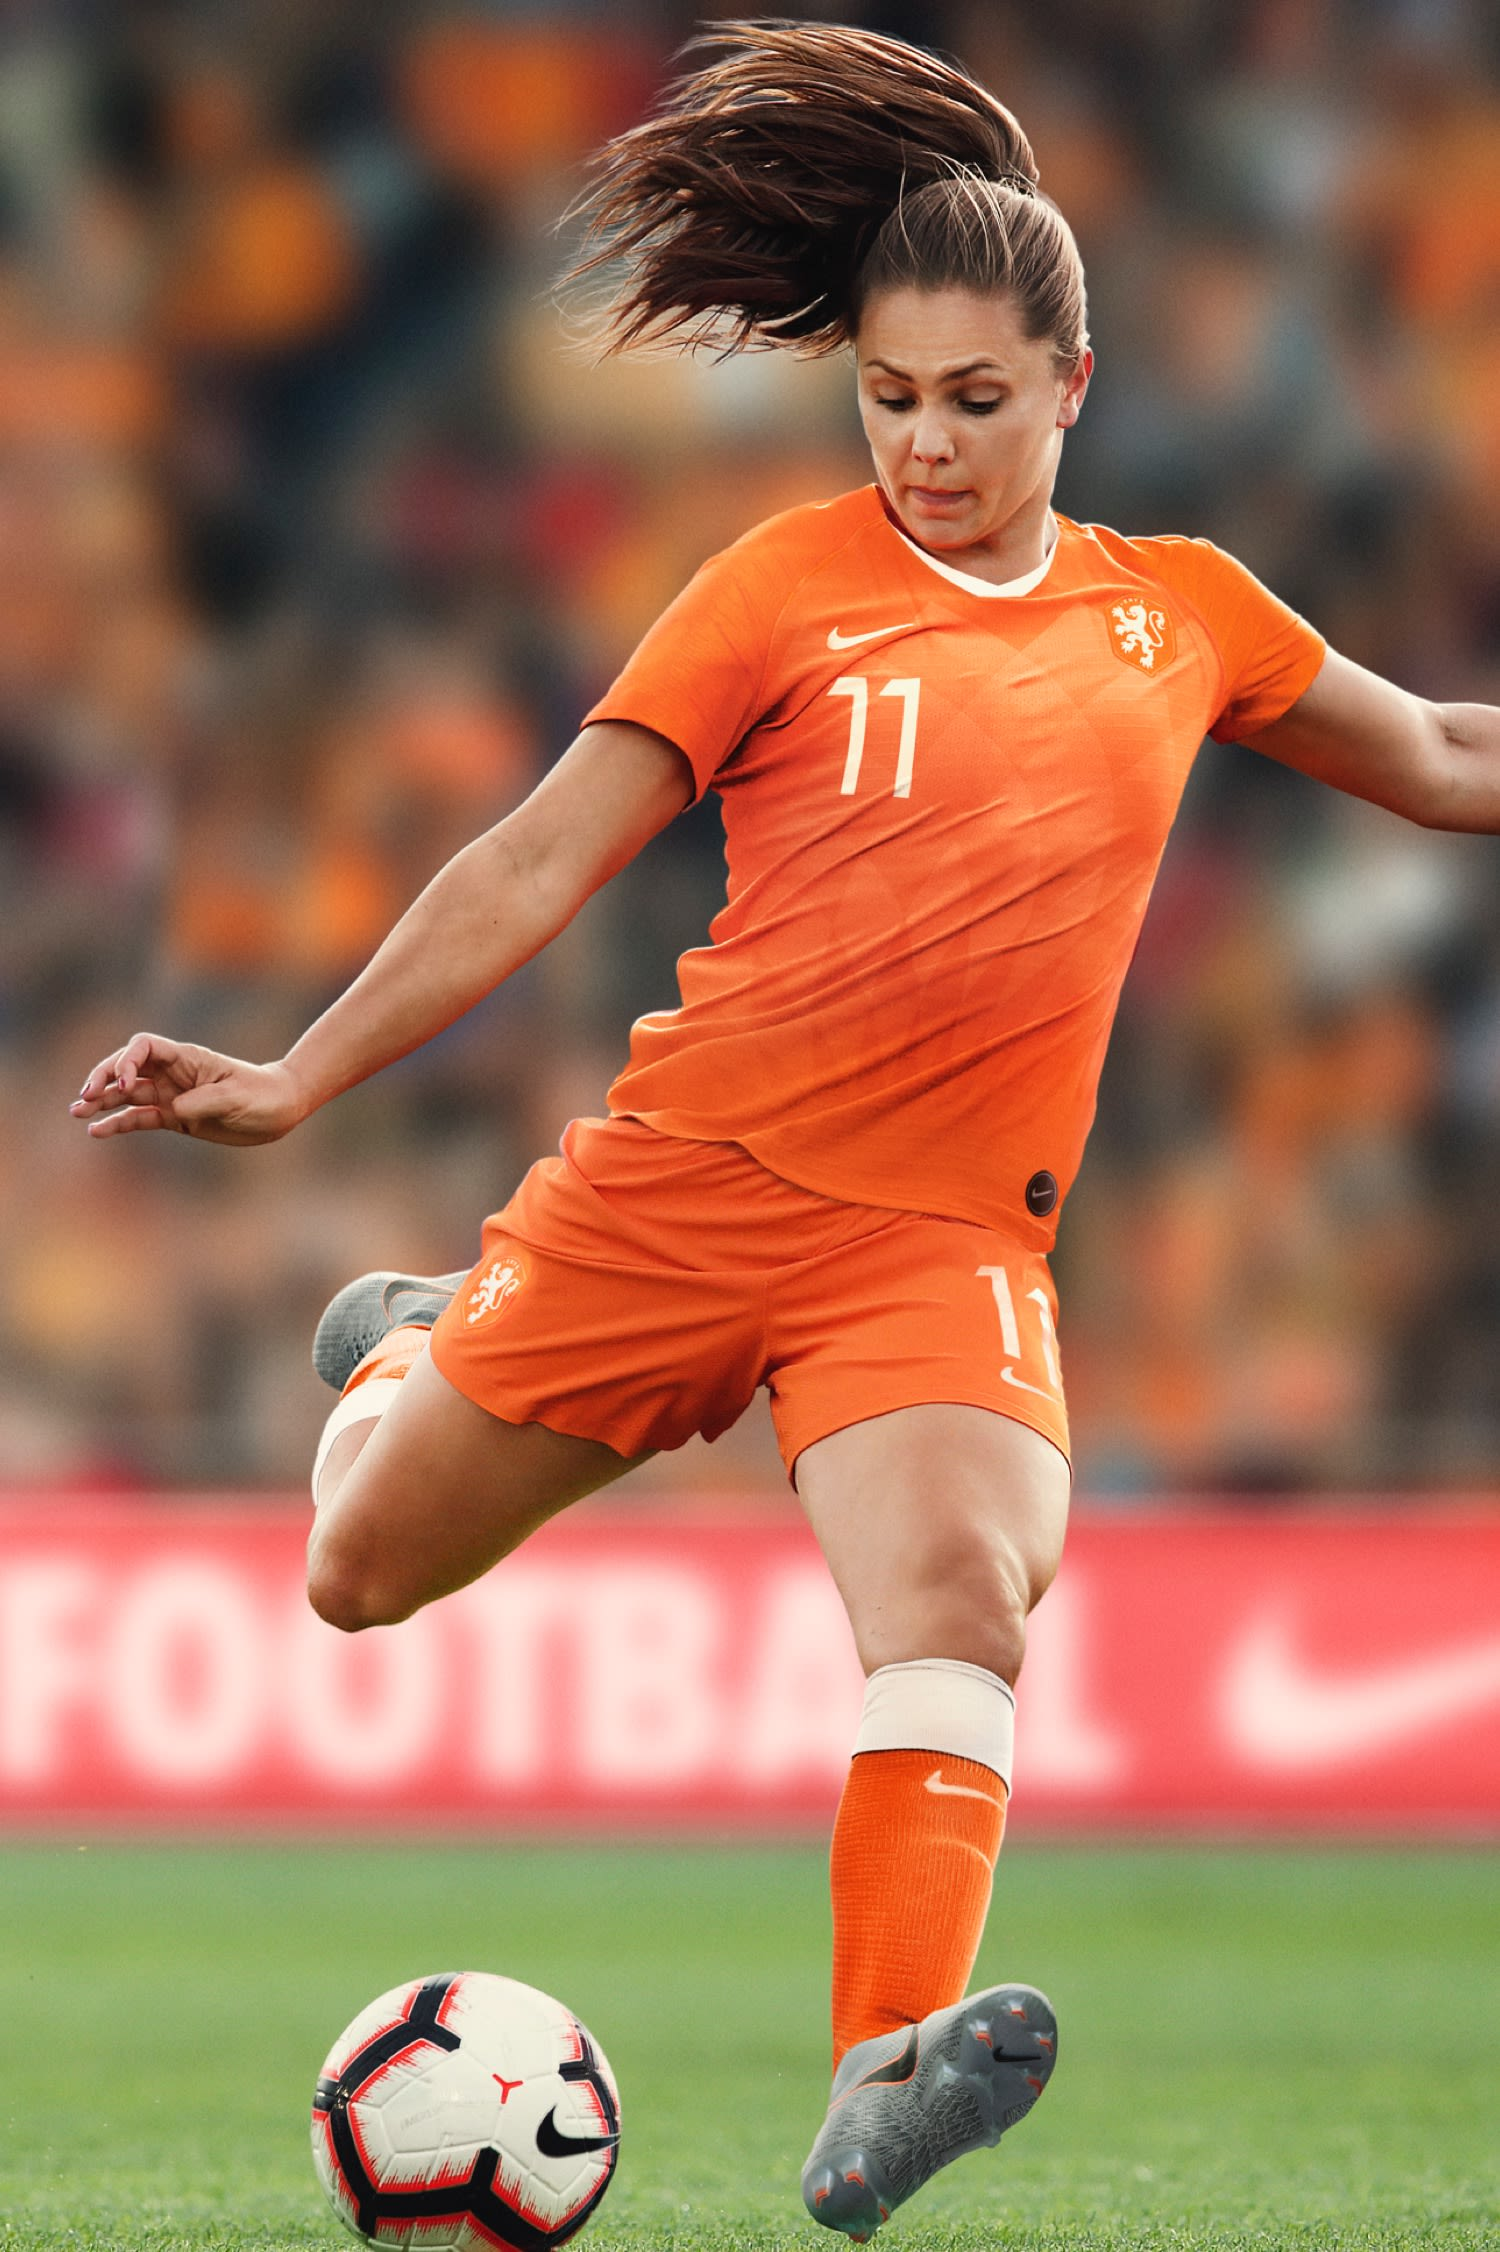 Netherlands Women's National Team 2019